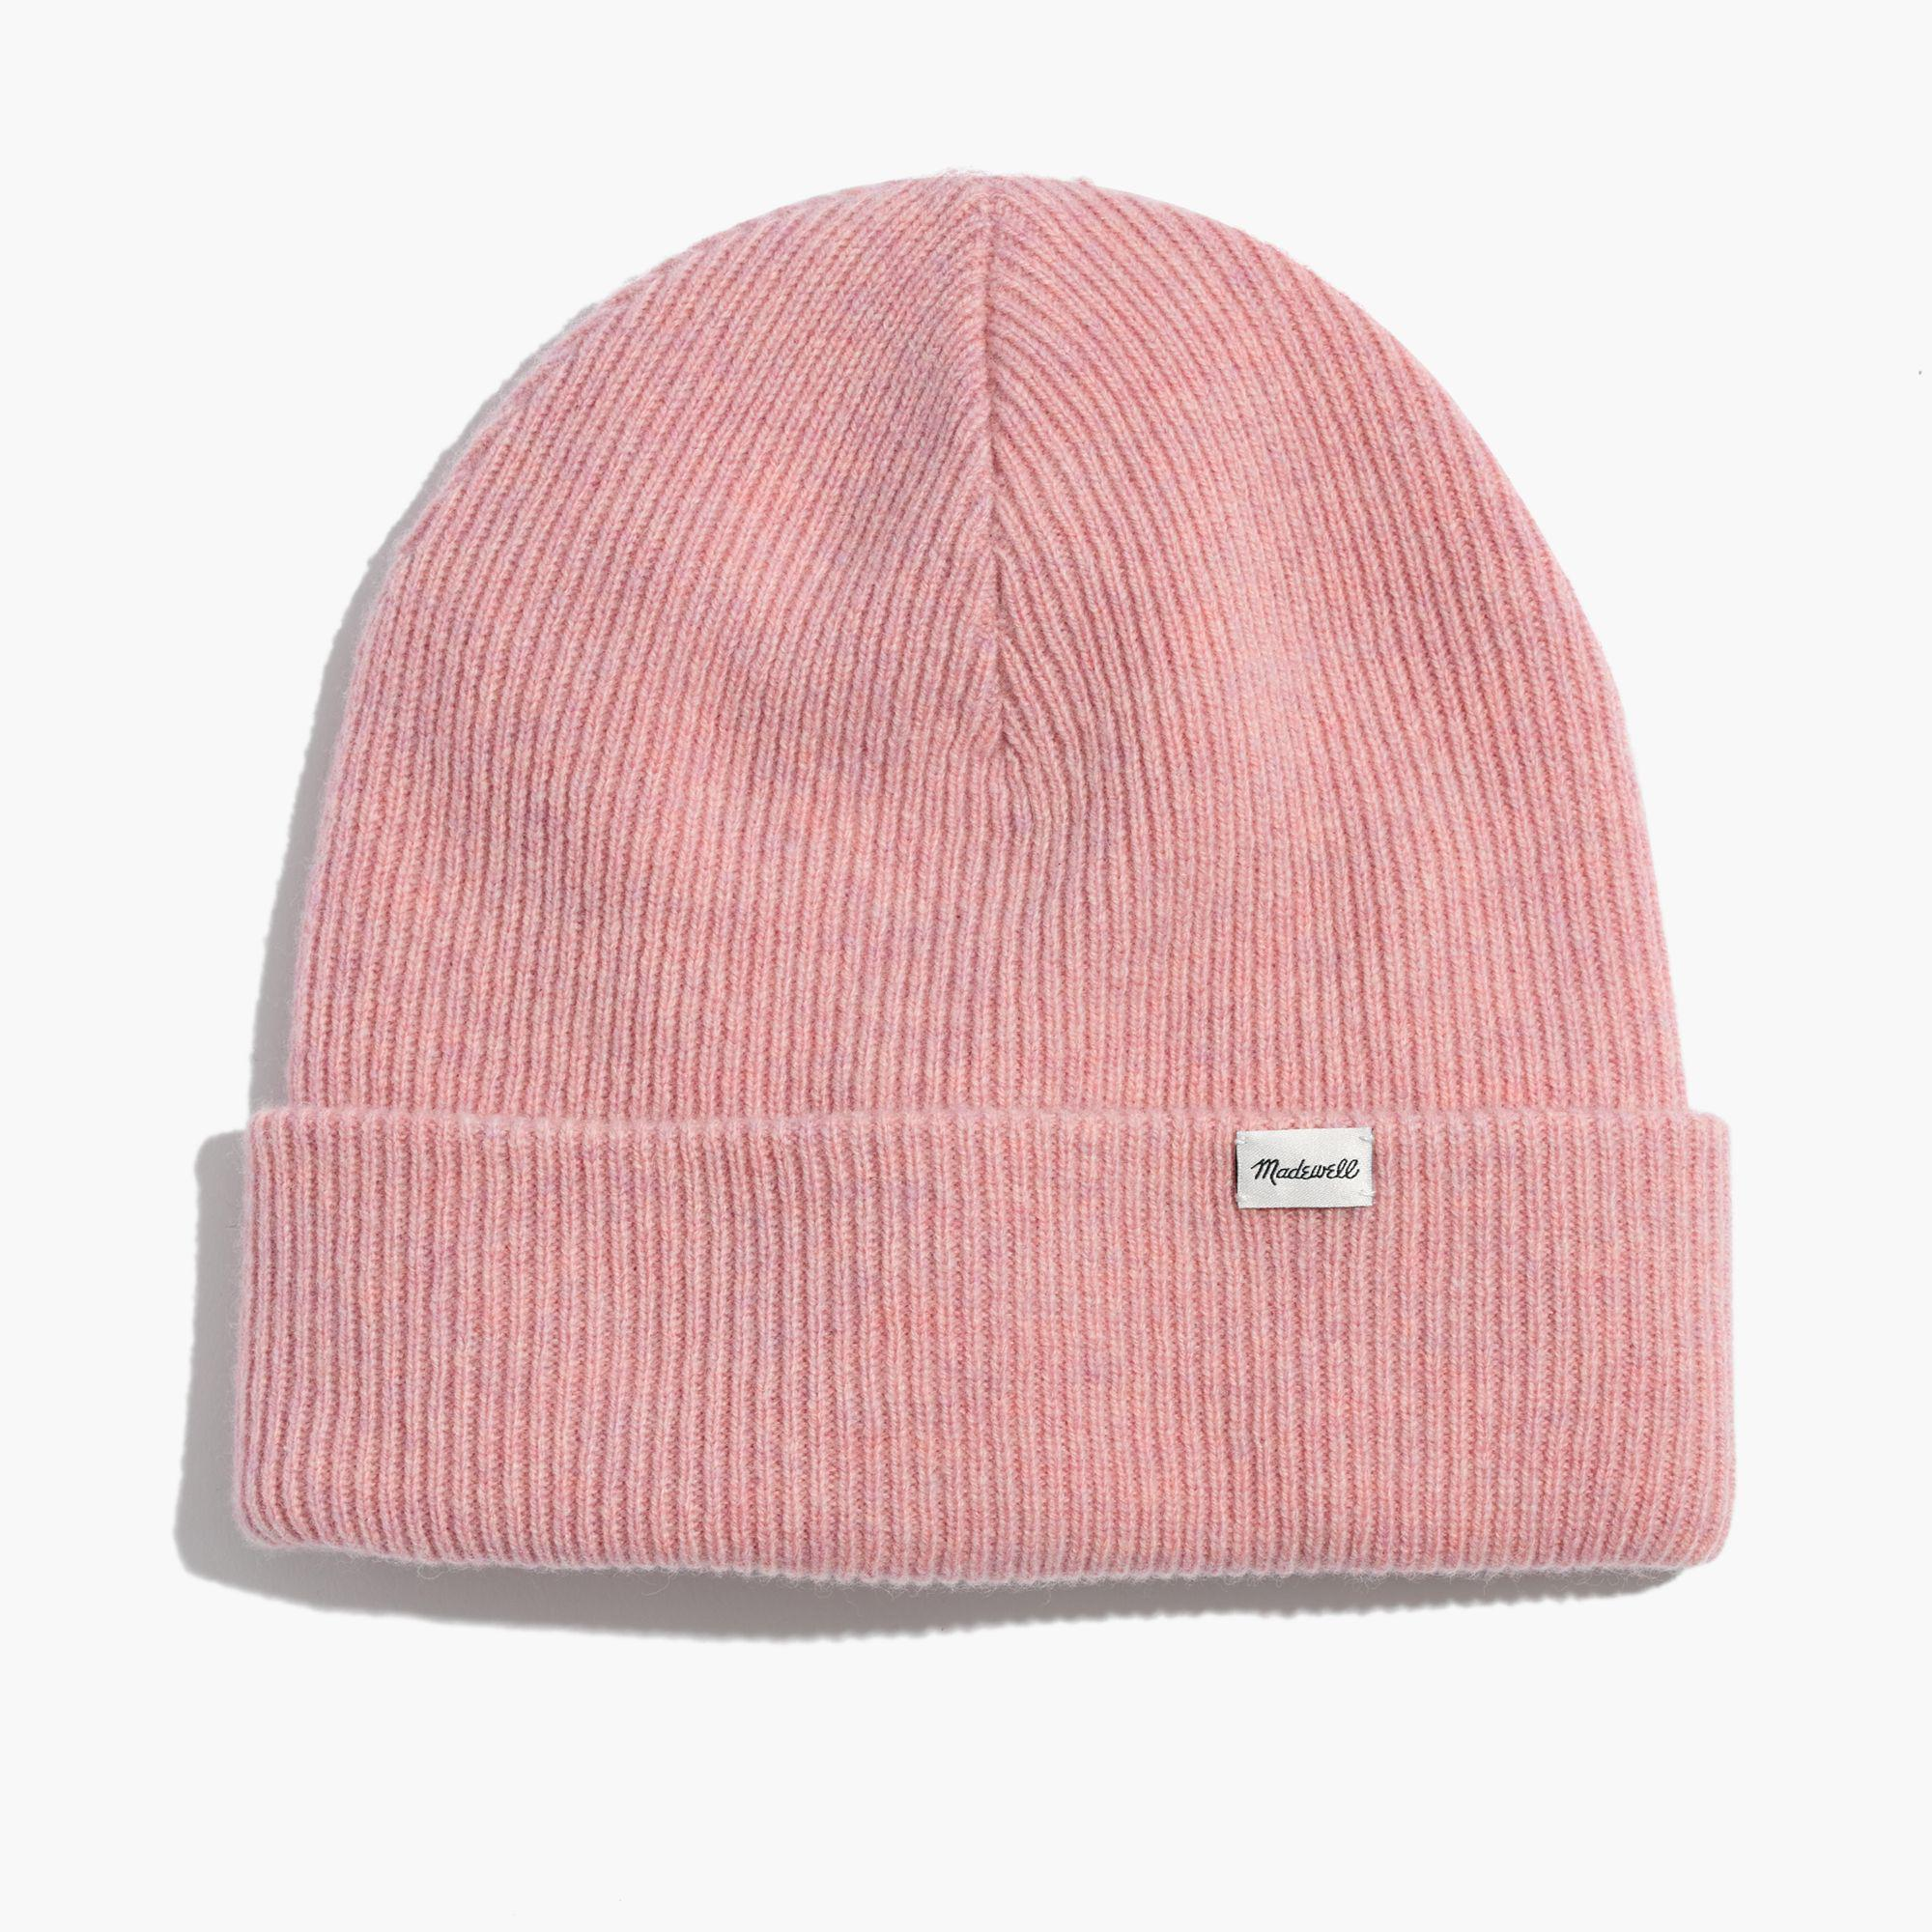 Lyst - Madewell Cuffed Cozy-knit Beanie in Pink for Men a88488ec94e9